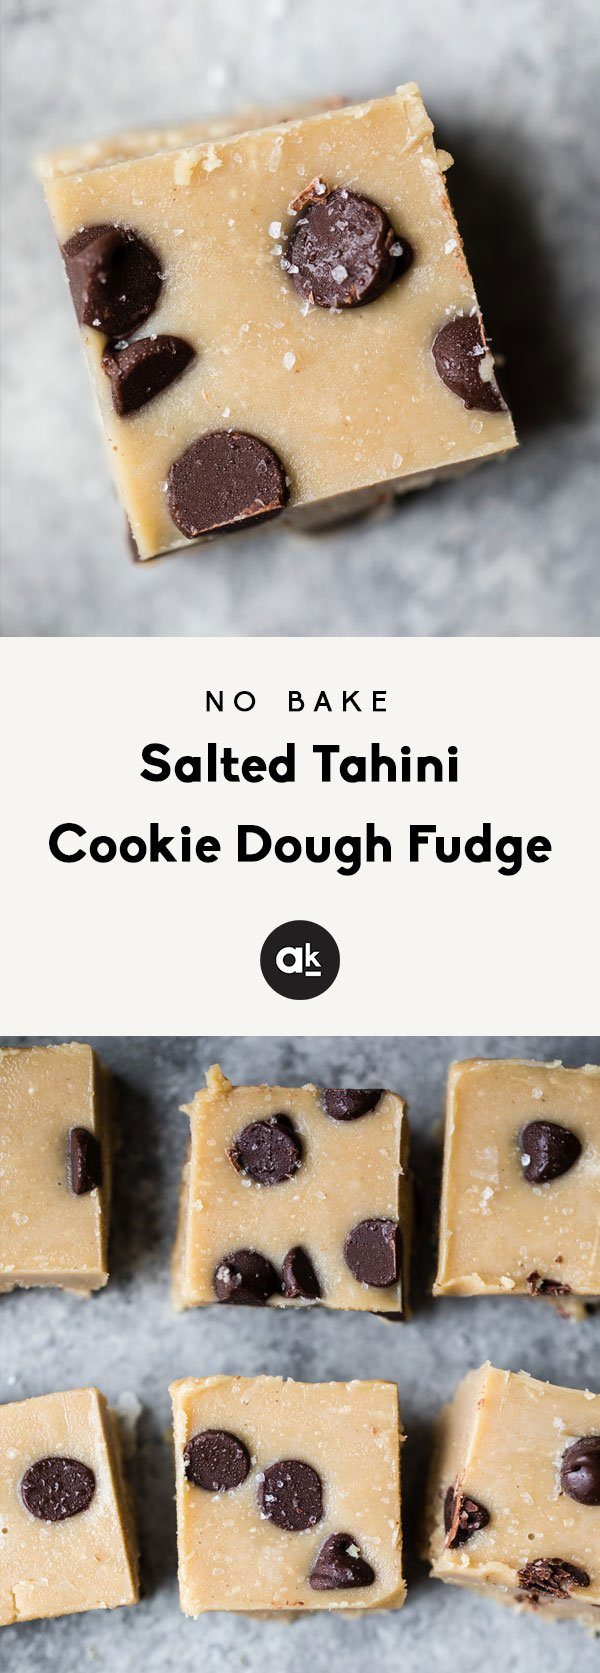 No bake healthy cookie dough fudge made with just three simple ingredients — tahini, coconut oil, maple syrup and salt. This absolutely delicious and easy low carb dessert with be your new favorite treat to keep in the freezer!